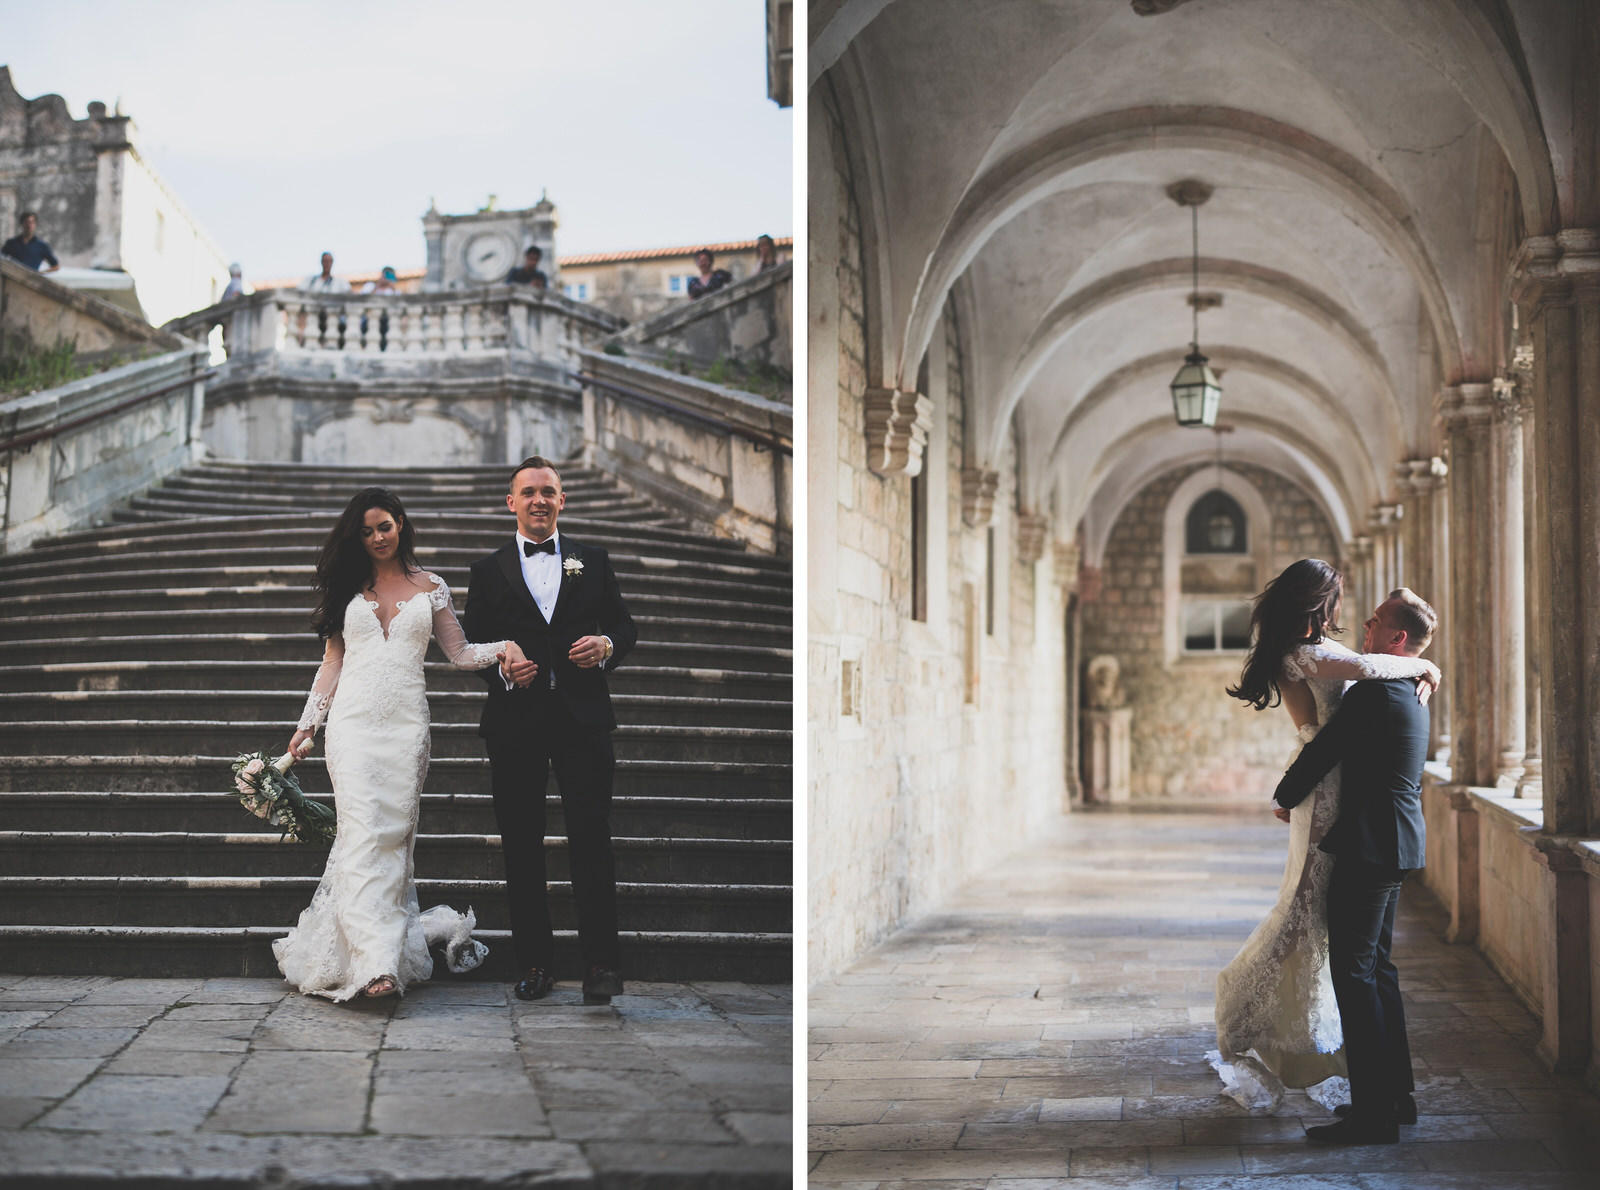 Destination wedding photographer - Dubrovnik Old town